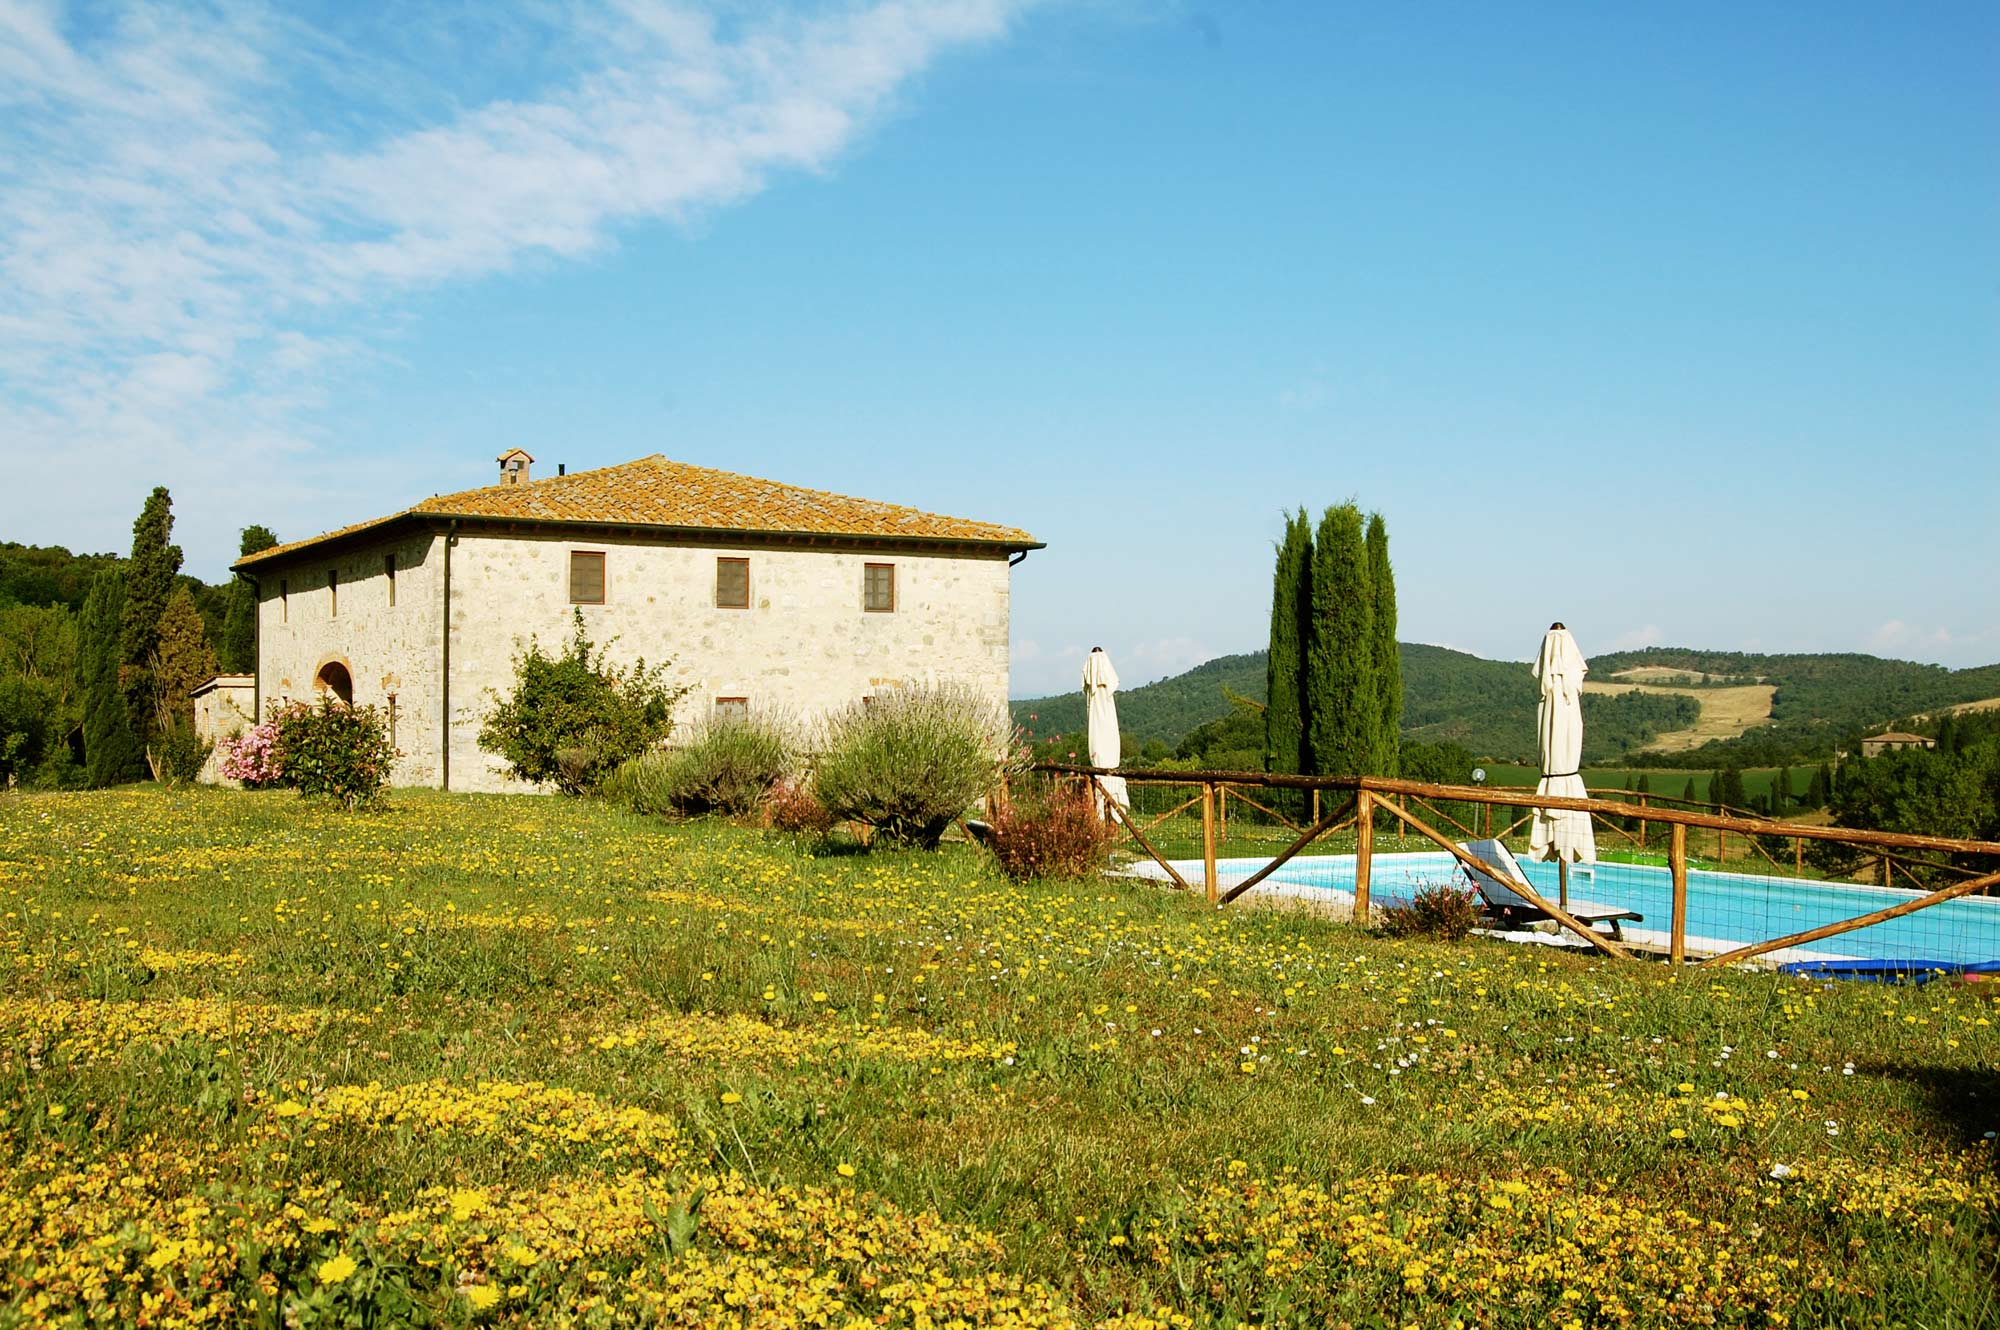 Villa in Tuscany private garden